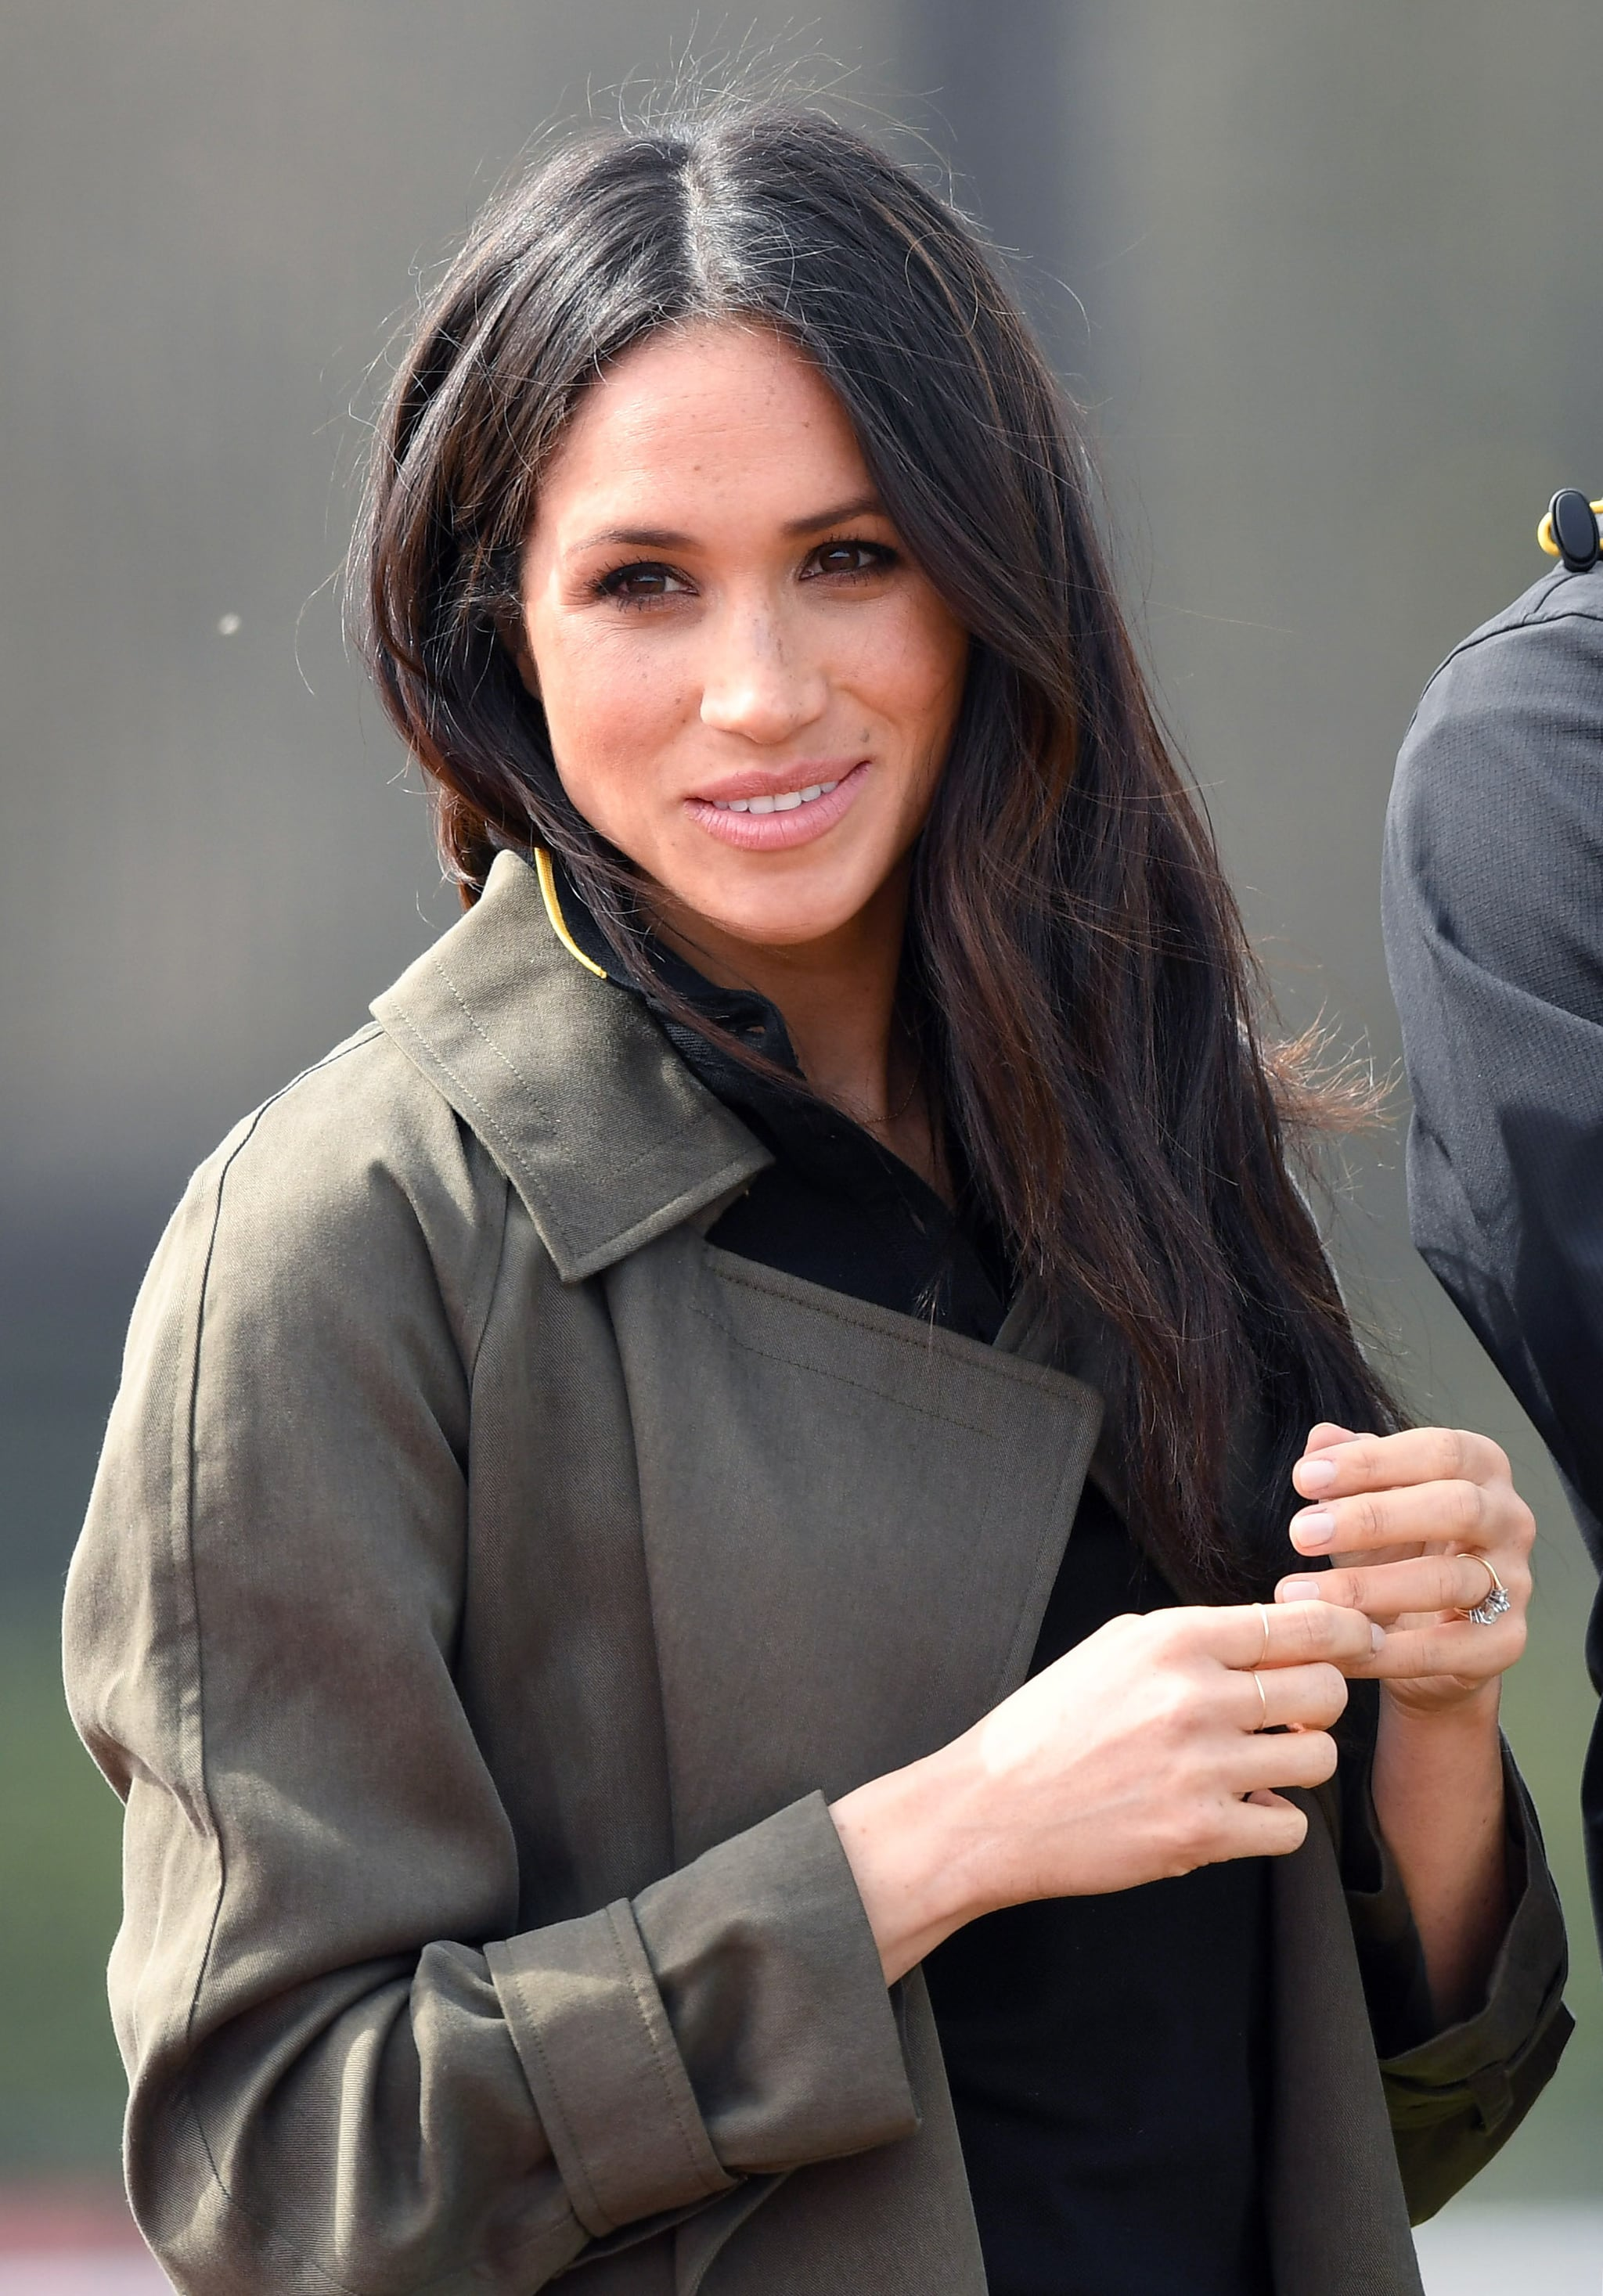 BATH, ENGLAND - APRIL 06:  Meghan Markle attends the UK Team Trials for the Invictus Games Sydney 2018 alongside Prince Harry at the University of Bath Sports Training Village on April 6, 2018 in Bath, England. The Invictus Games Sydney 2018 will take place from 20-27th October and will see over 500 competitors from 18 nations compete in 11 adaptive sports.  (Photo by Karwai Tang/WireImage)